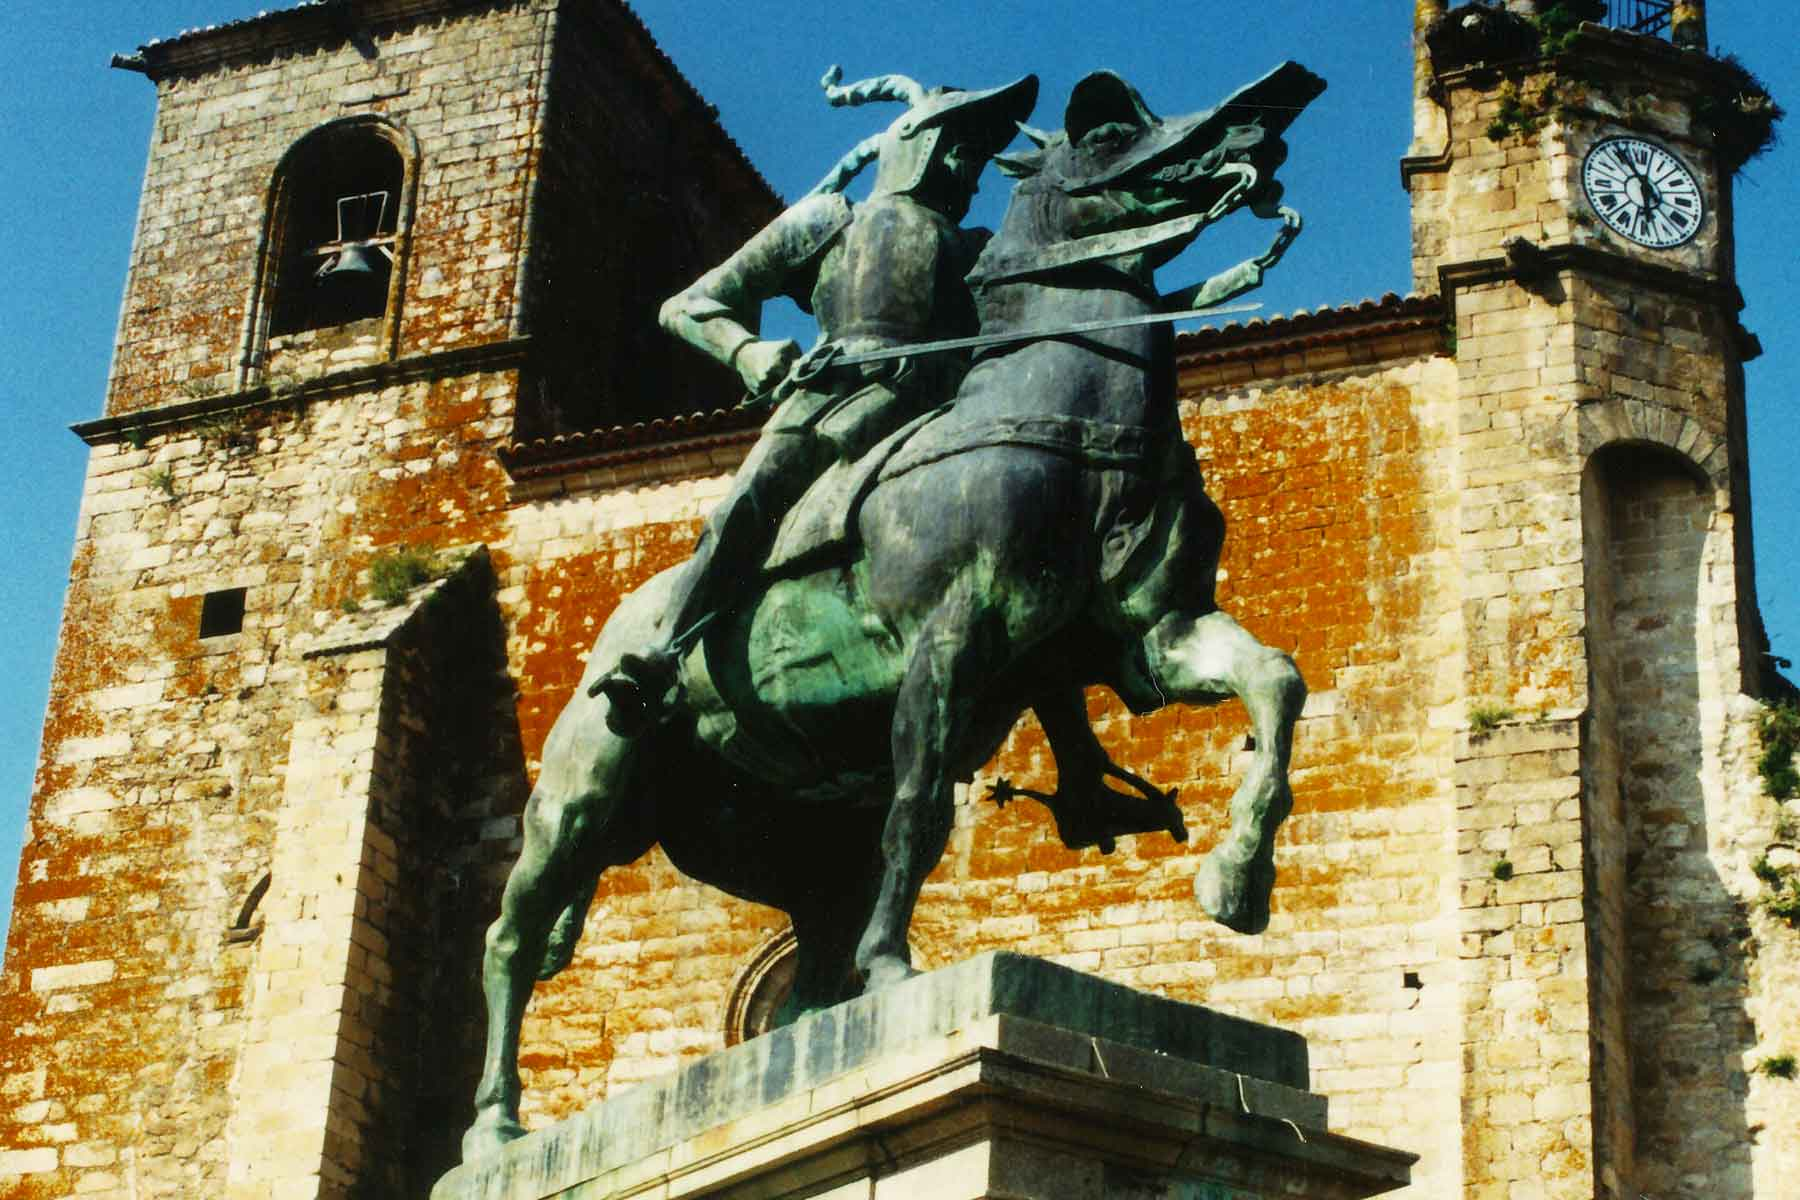 Francisco Pizarro Statue - Trujillo Spain - Study Abroad Journal - Steven Andrew Martin